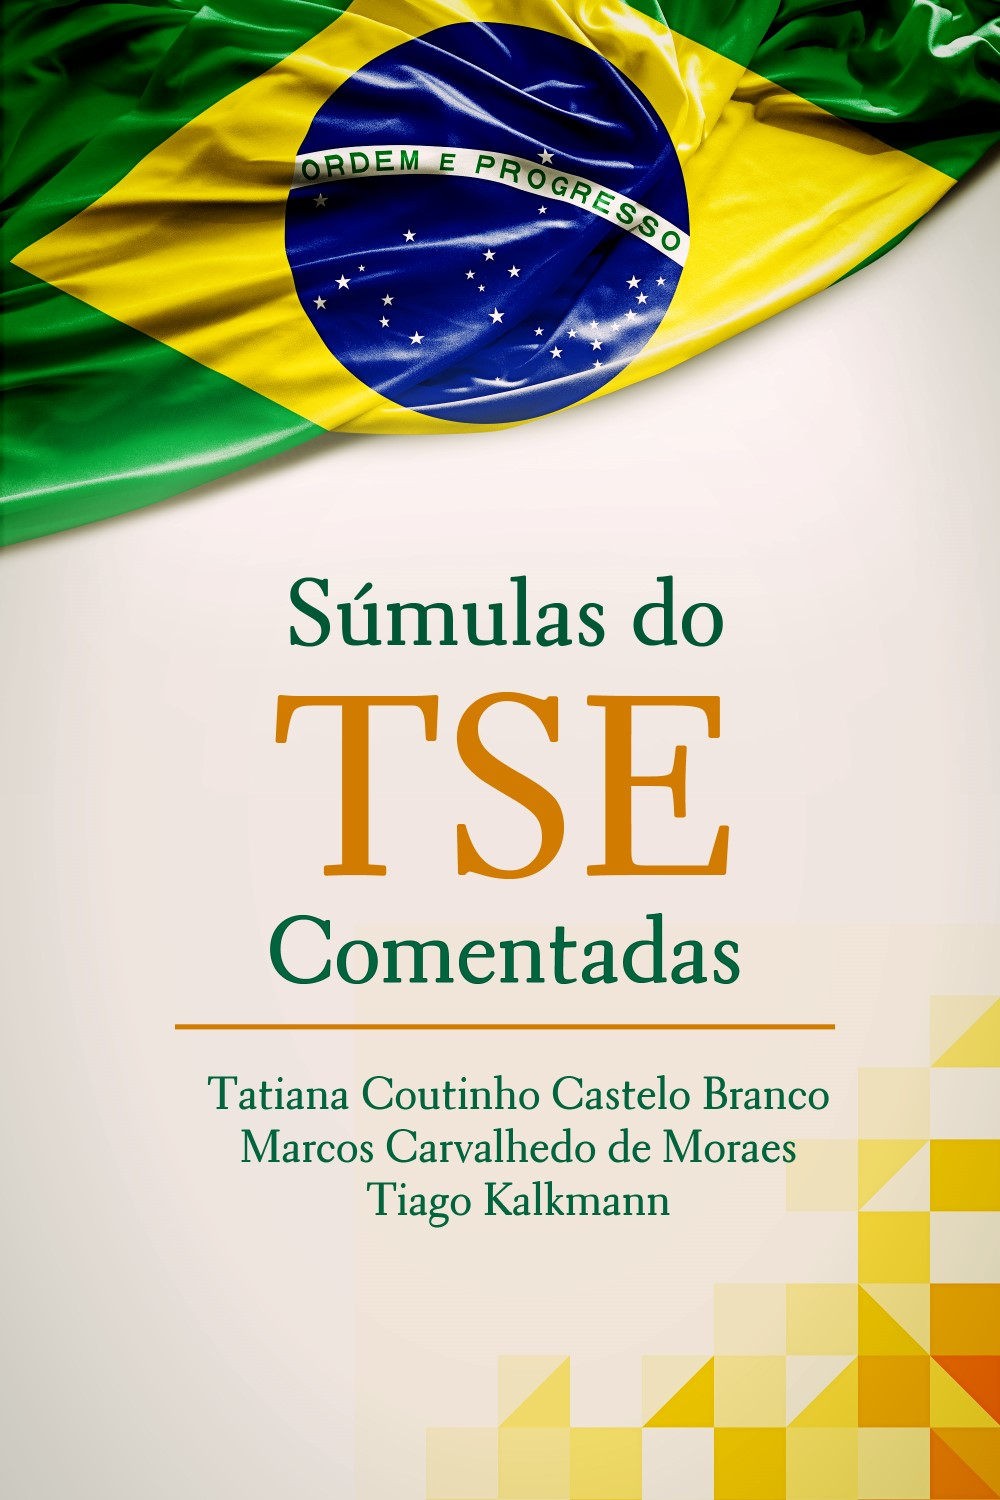 Capa do ebook Súmulas do TSE comentadas